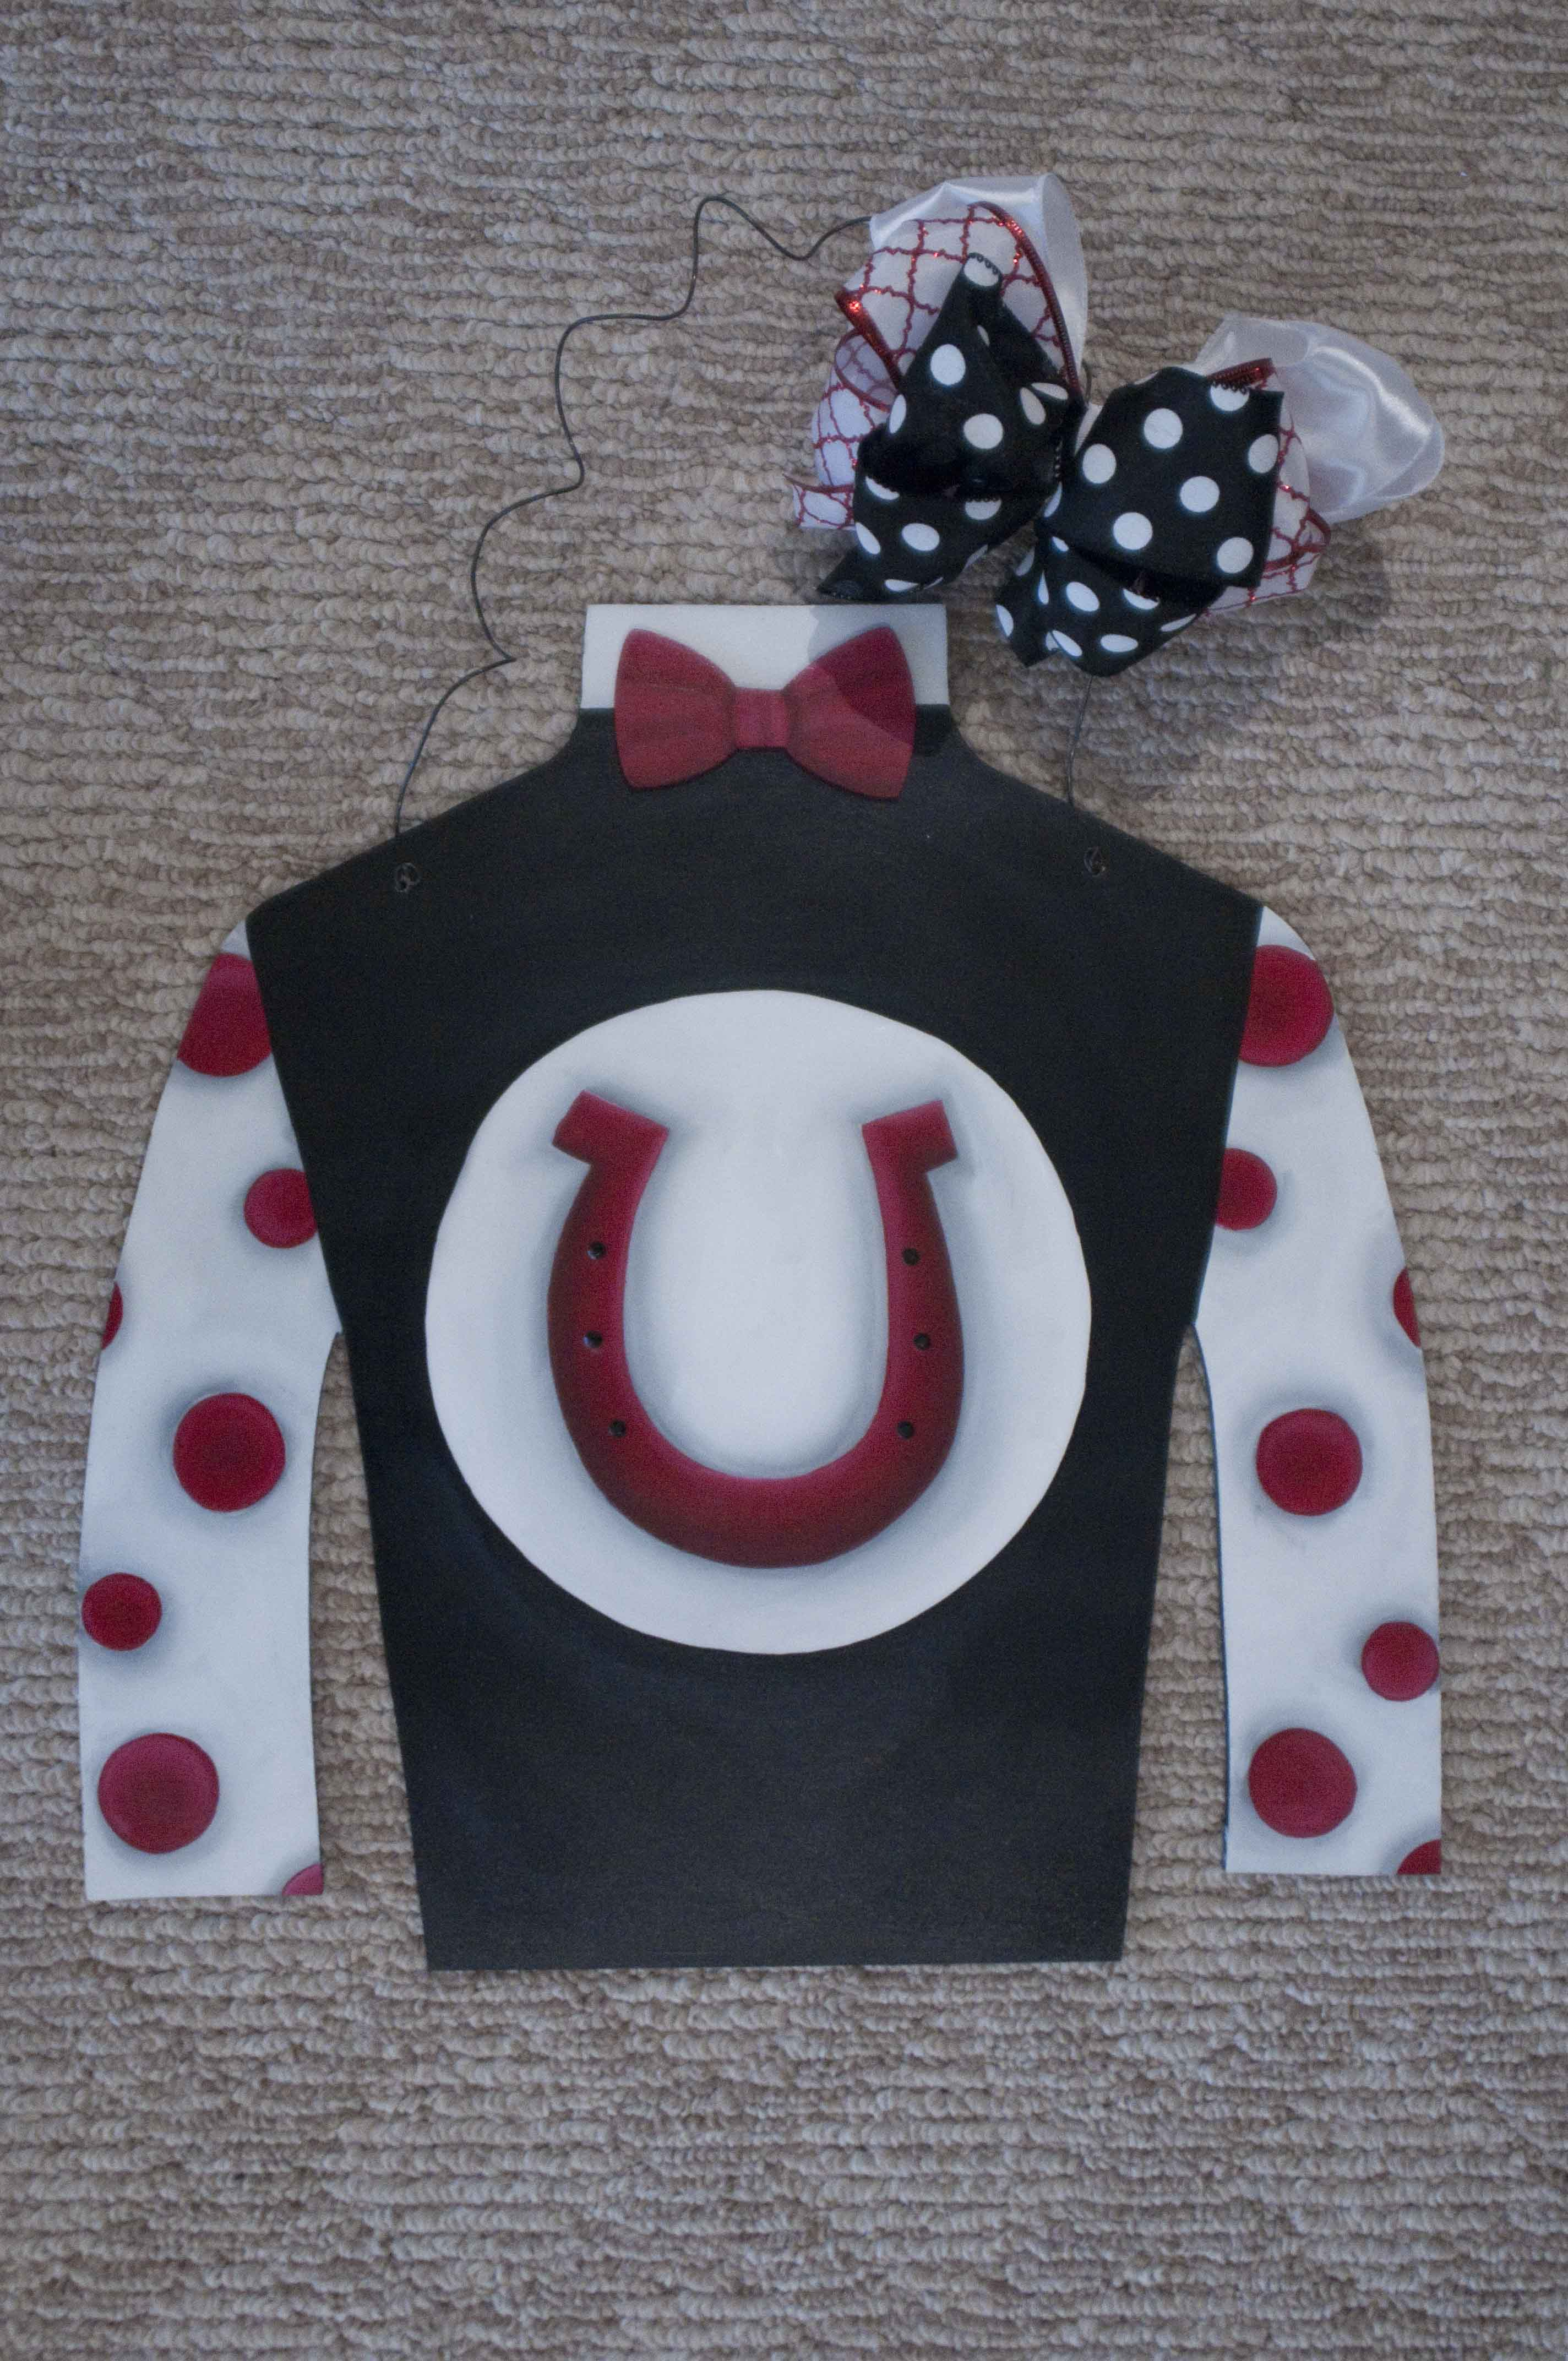 Jockey Silk - Black w Red Horseshoe